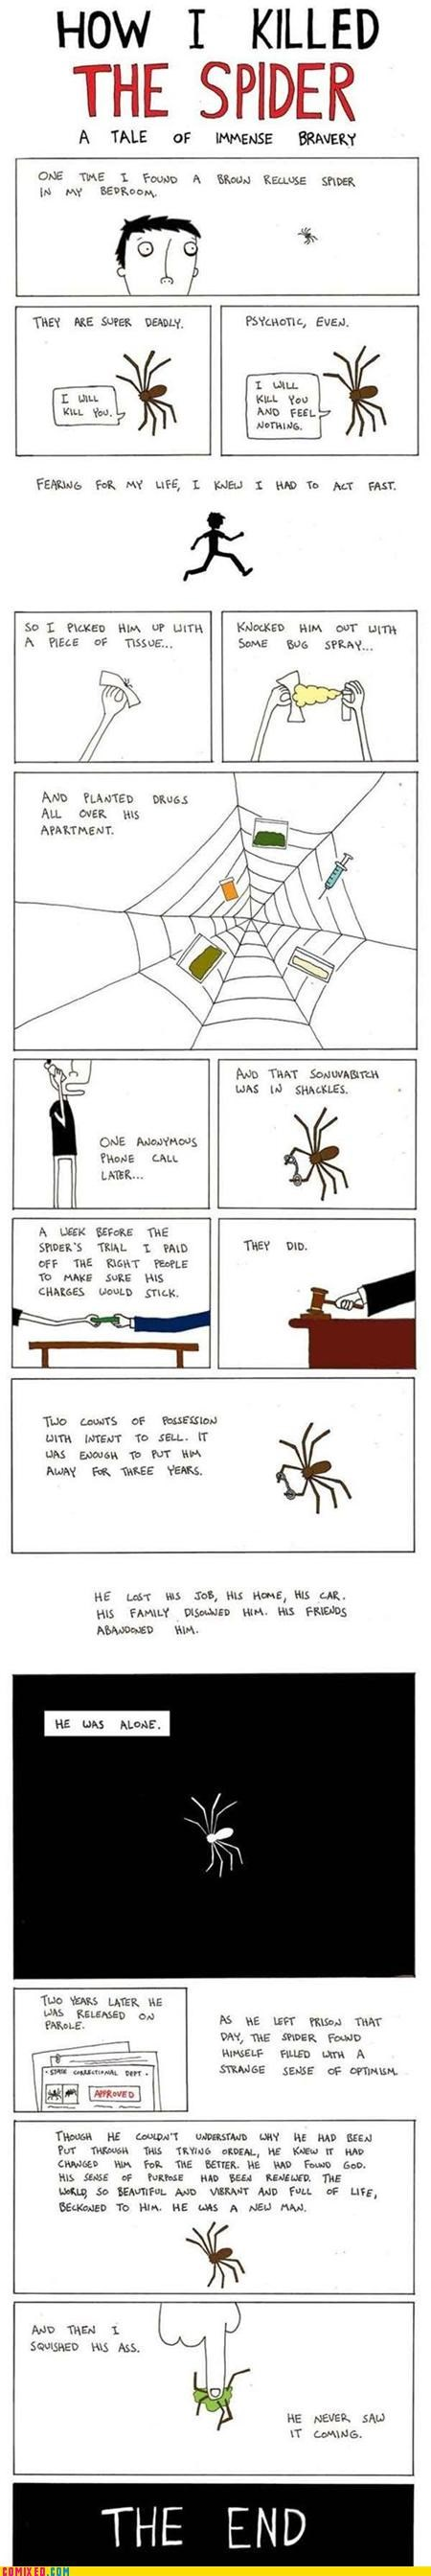 best of week bravery killing never saw it coming spider the internets tricked u mad - 5260448256